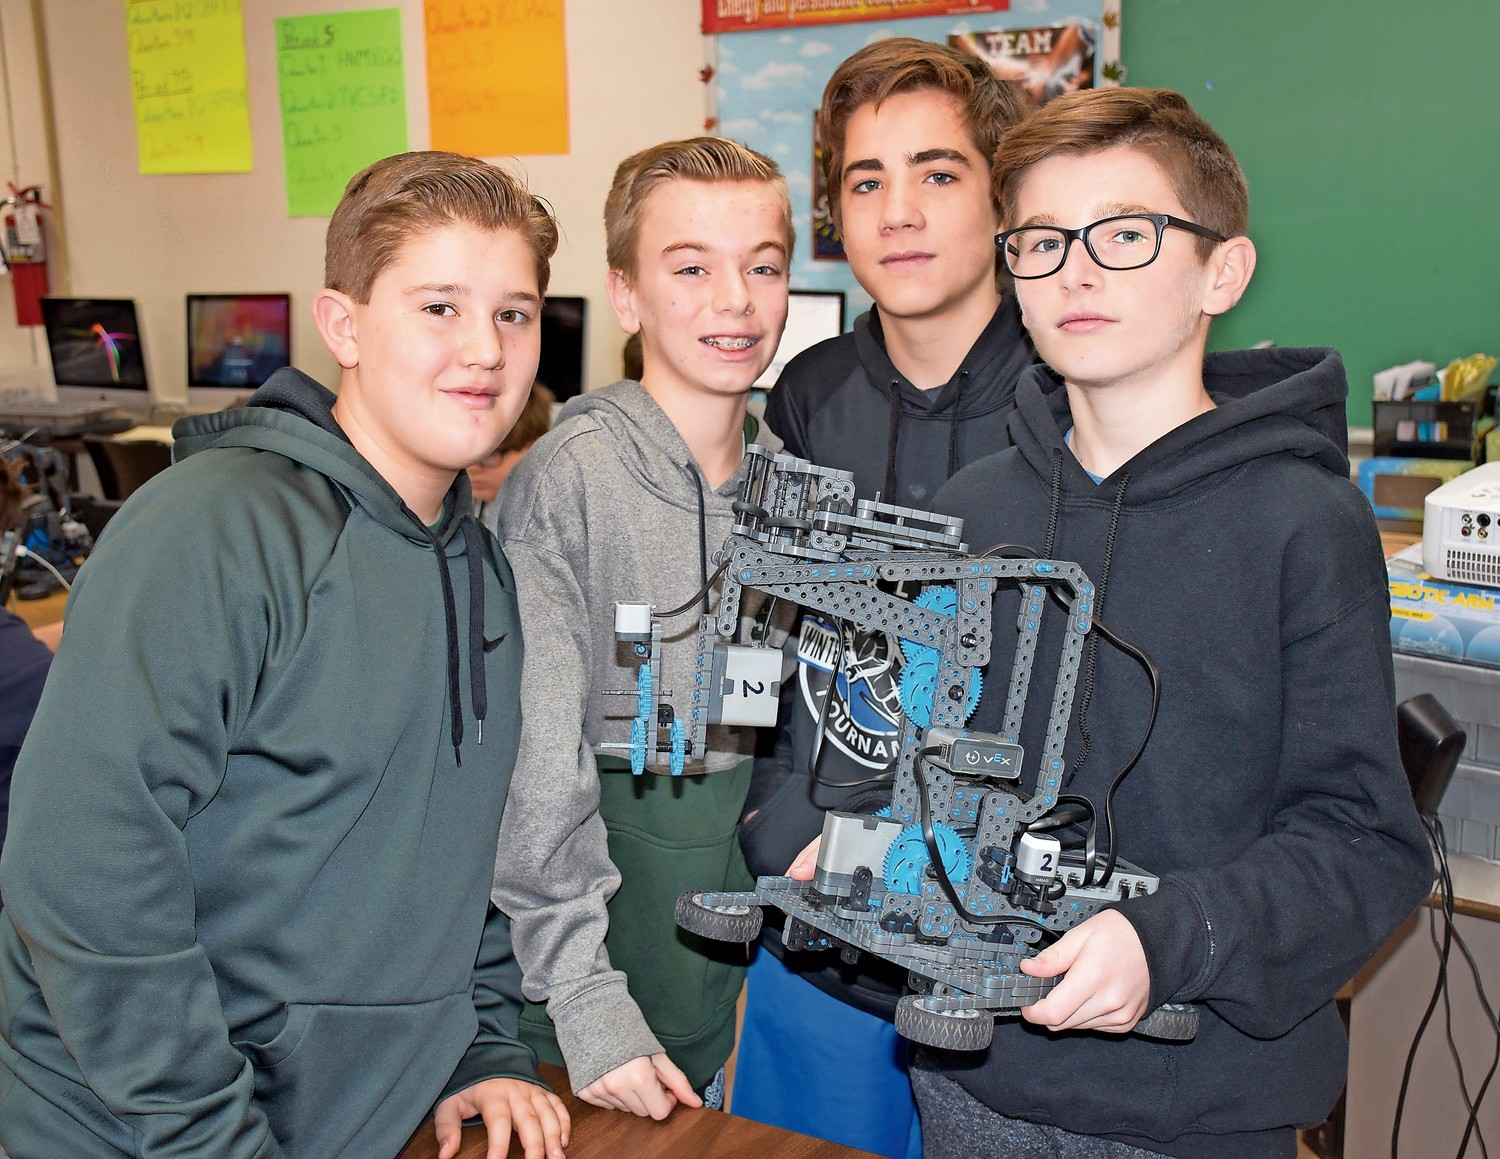 Seaford Middle School eighth-graders, from left, Jimmy Manzick, Paul Anzelone, Evan Paccione and Brandon Owens learned about robotics in a new half-year technology course.